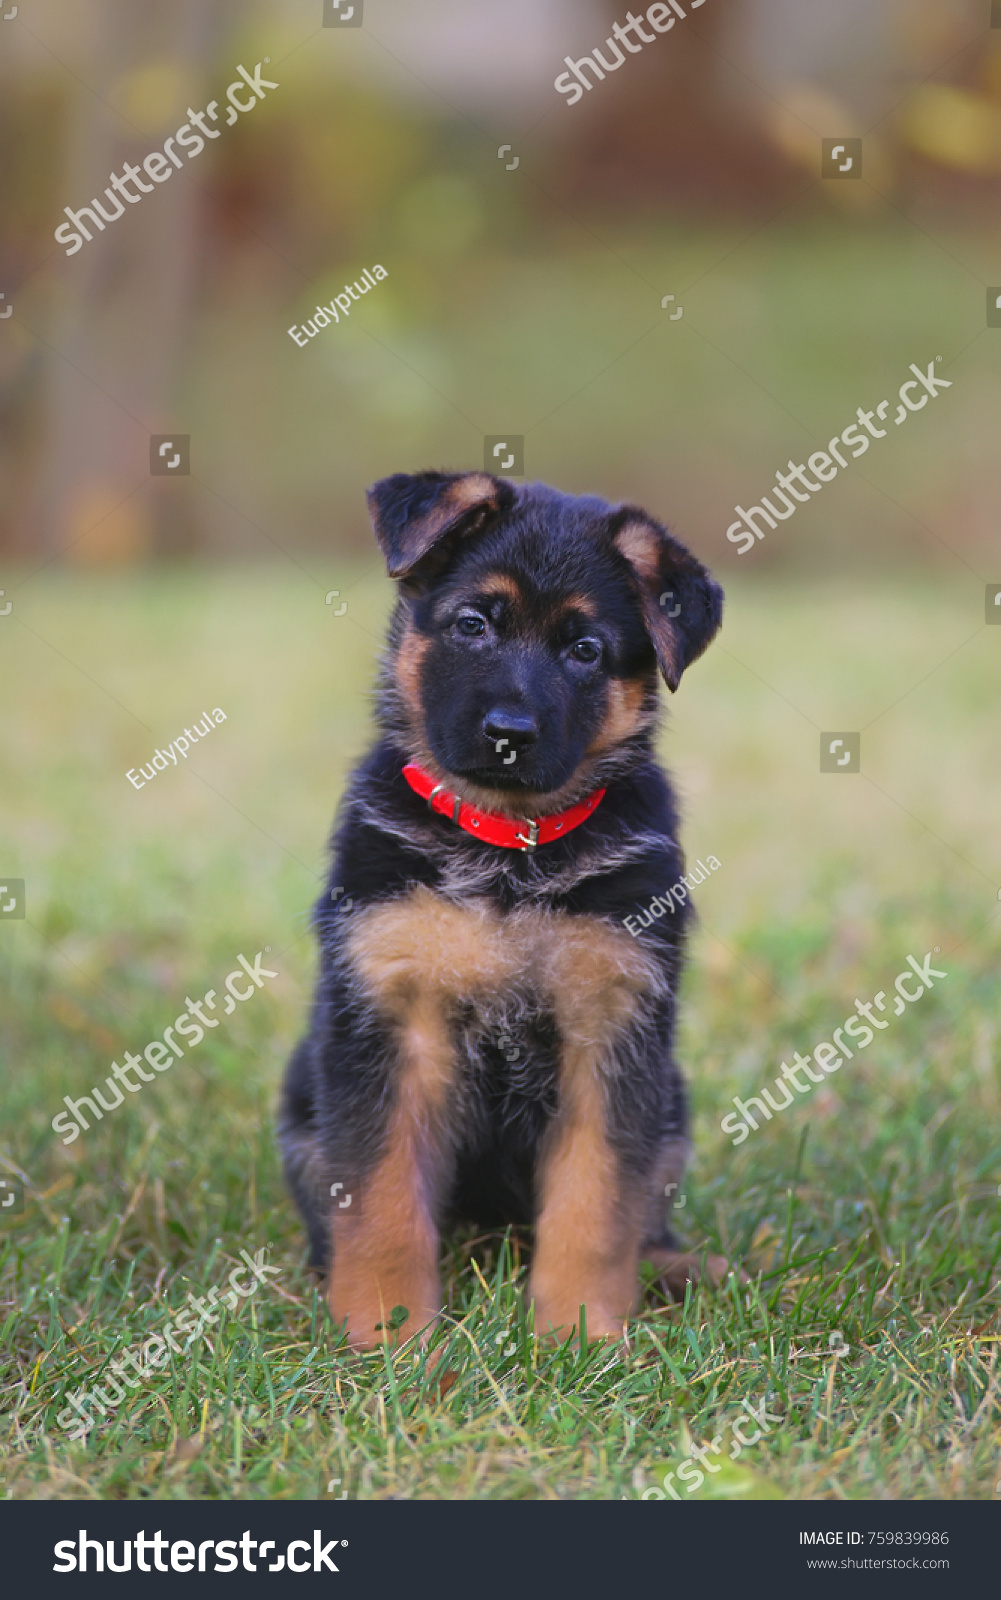 Cute Shorthaired German Shepherd Puppy Wearing Stock Photo Edit Now 759839986